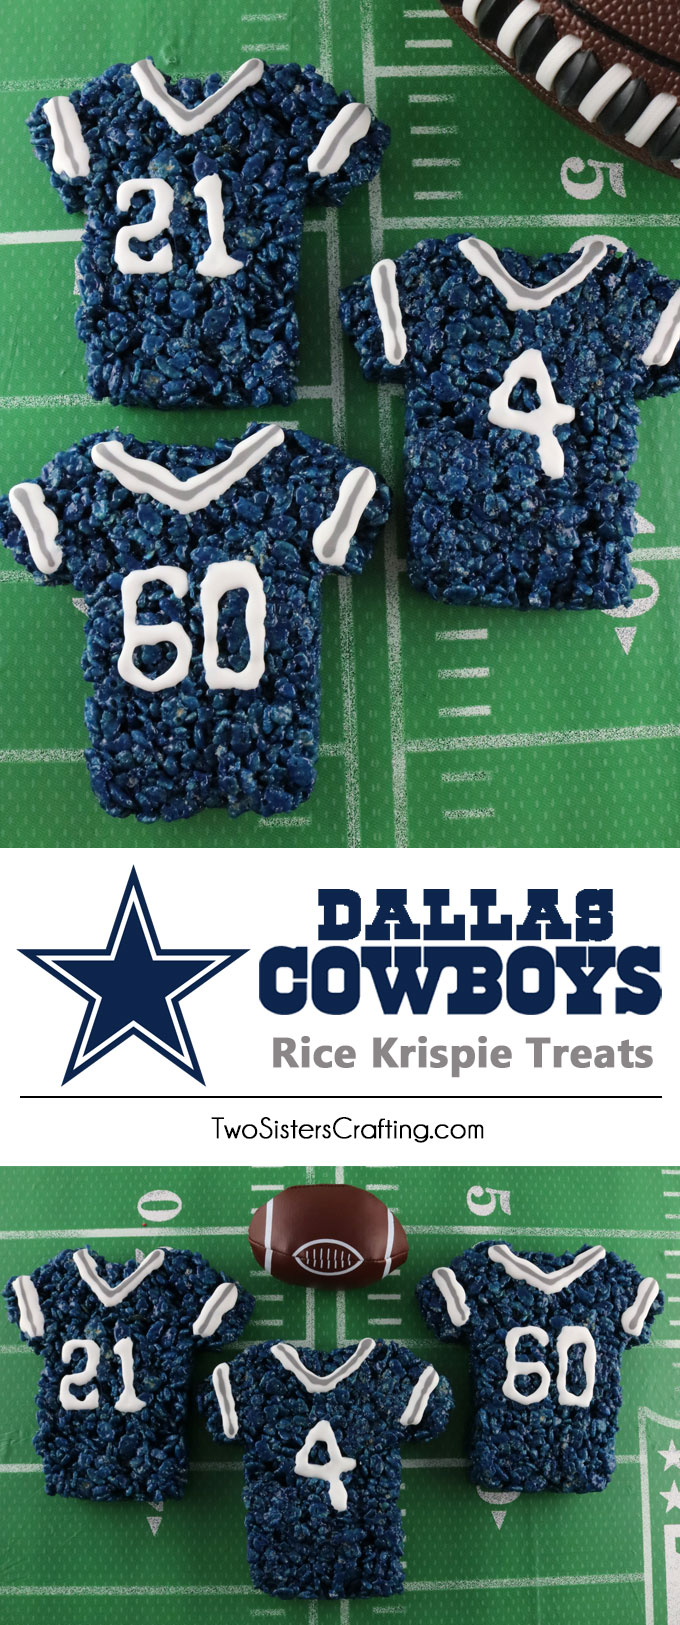 These Dallas Cowboys Rice Krispie Treats Team Jerseys are a fun football dessert for a game day football party, an NFL playoff party, a Super Bowl party or as a special snack for the Dallas Cowboys fans in your life. Go Cowboys! And follow us for more fun Super Bowl Food Ideas.